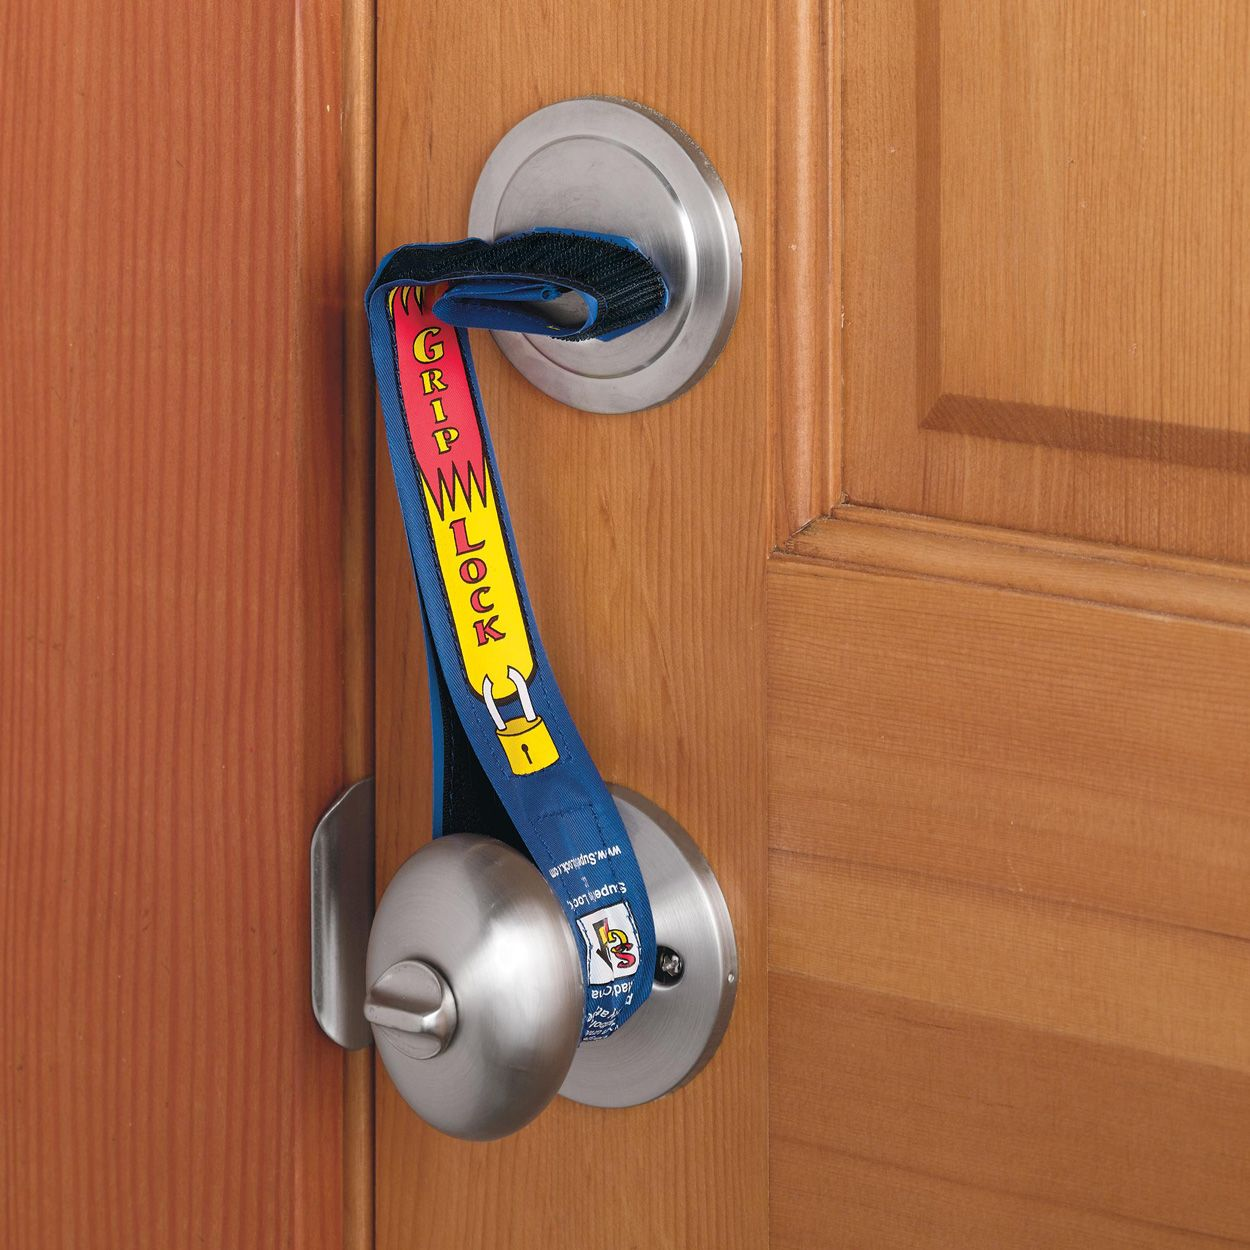 Super Grip Lock Deadbolt Strap Door Can T Be Opened Even With A Key For Home Or The Hotel Room Knowing Nobody Ca Cool Stuff Home Security Household Hacks